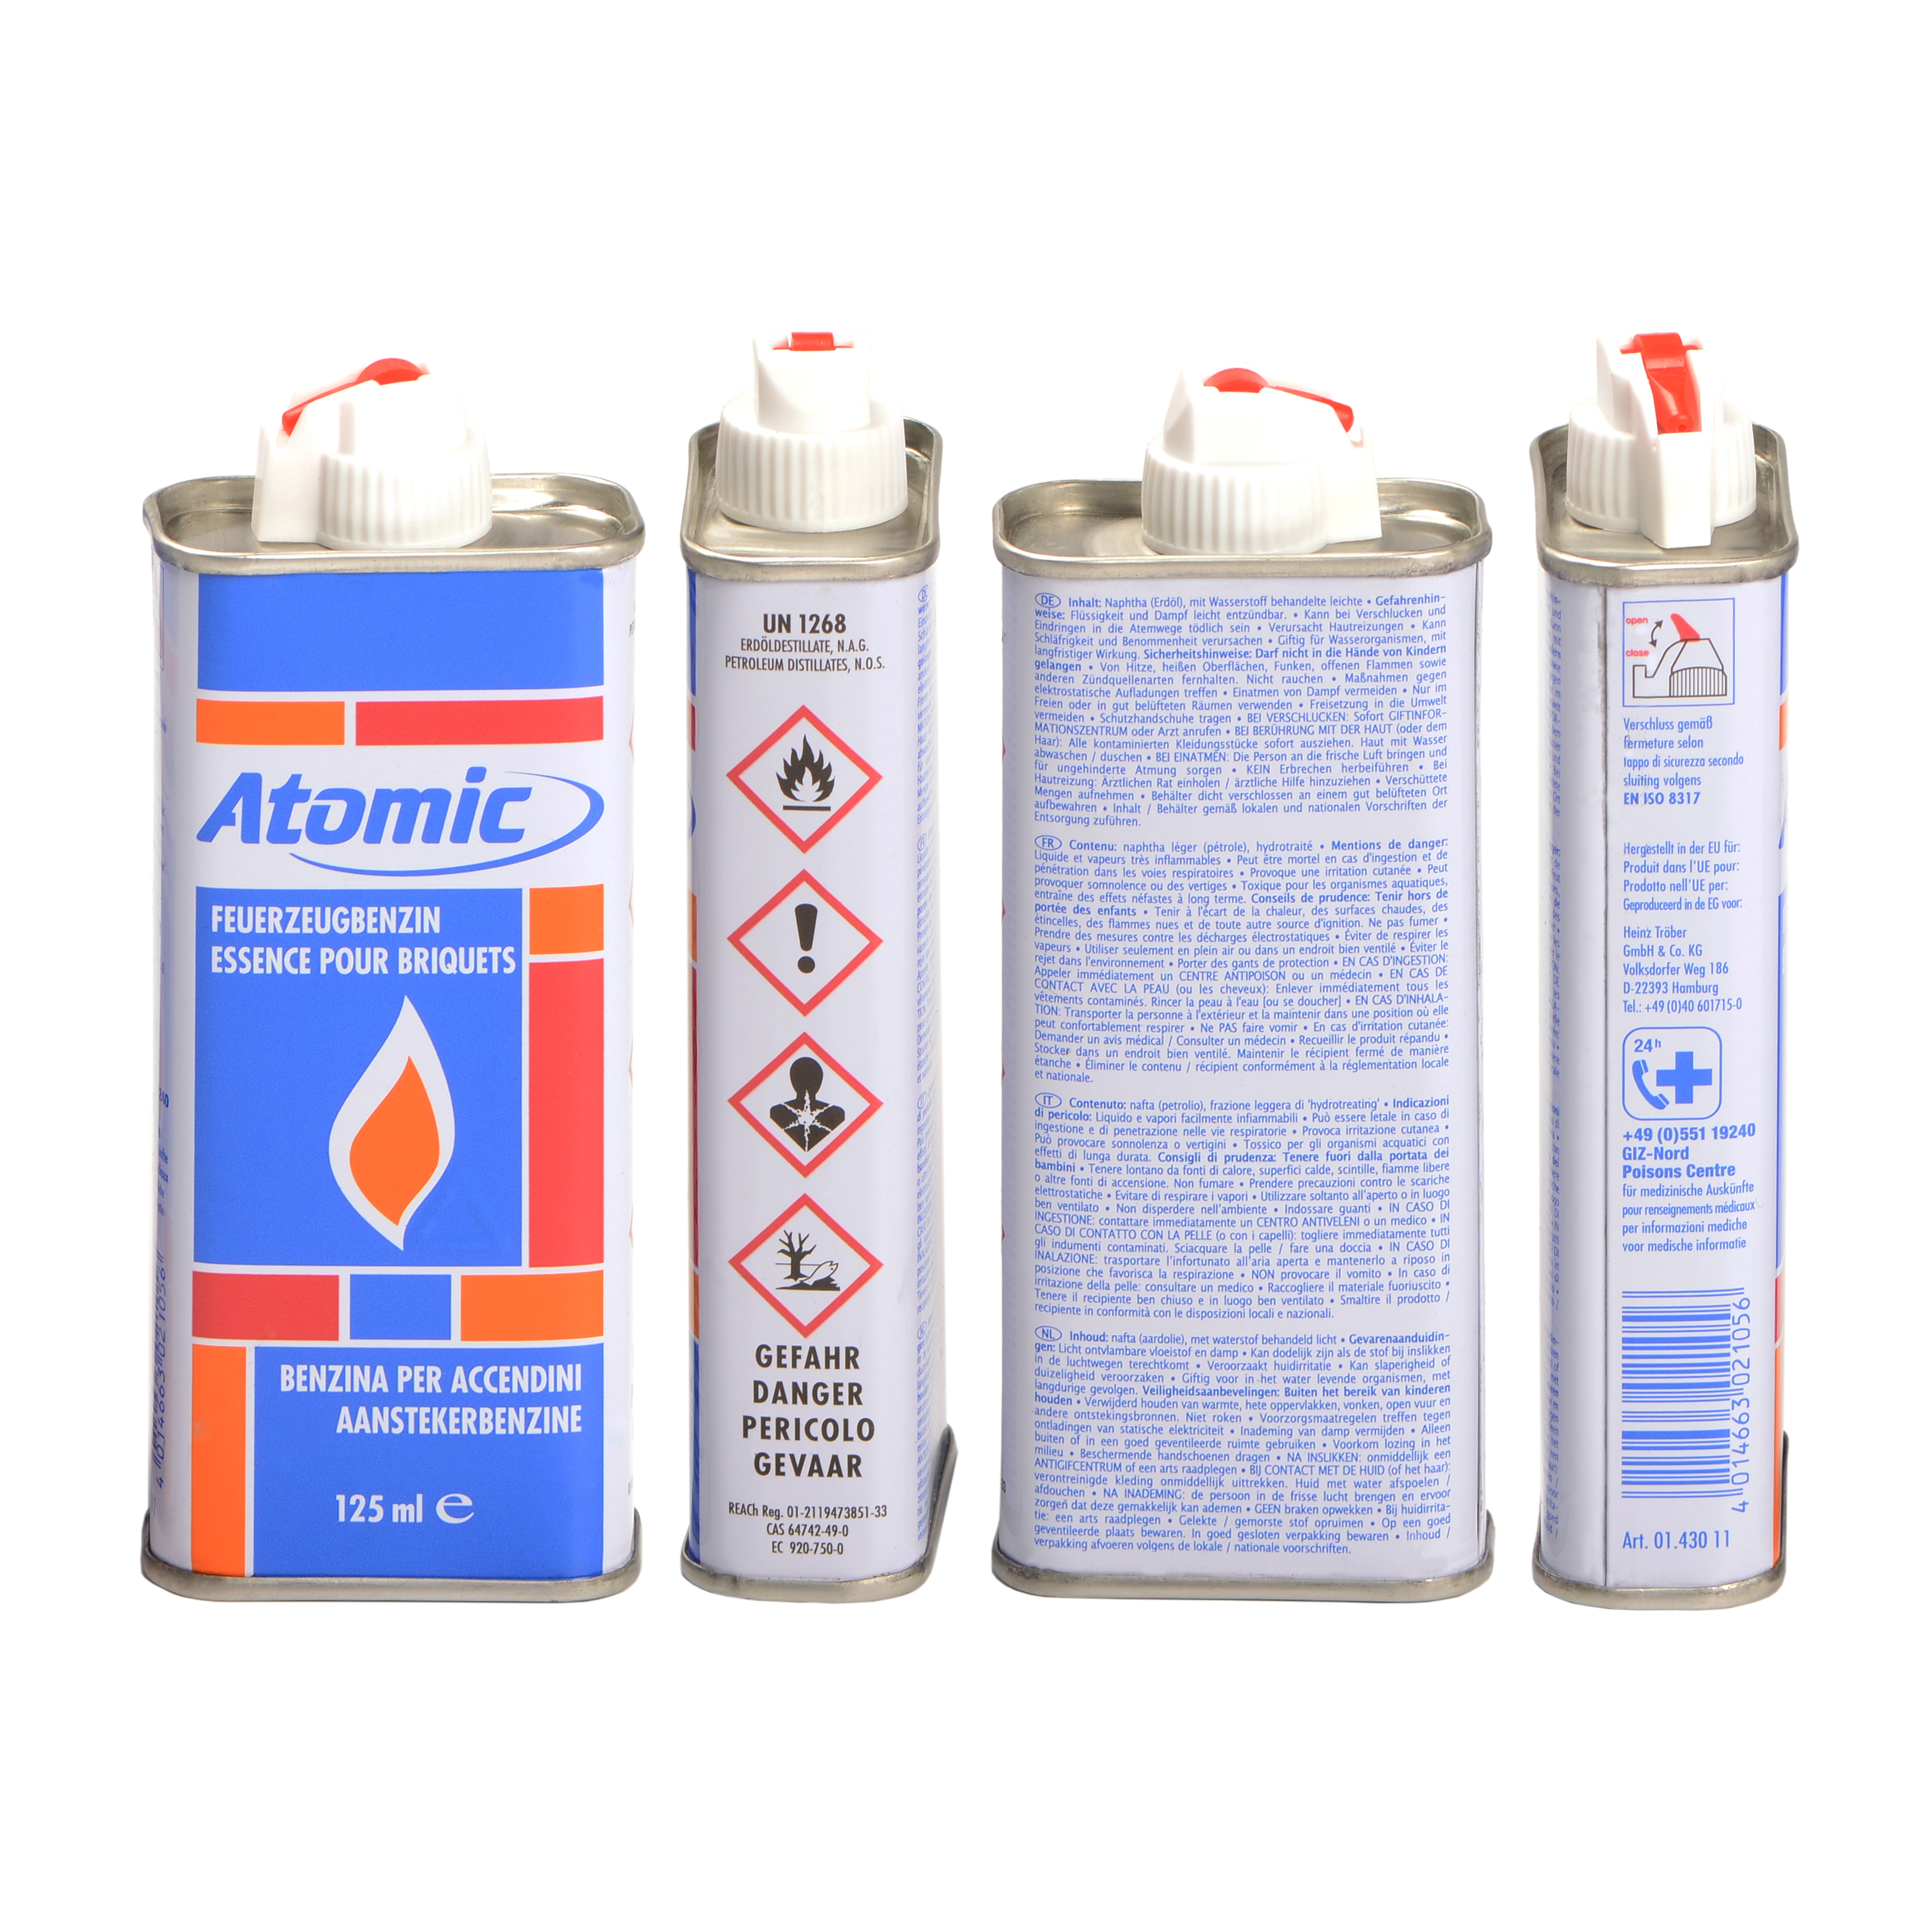 Benzyna do zapalniczek 0143011 Atomic 125 ml